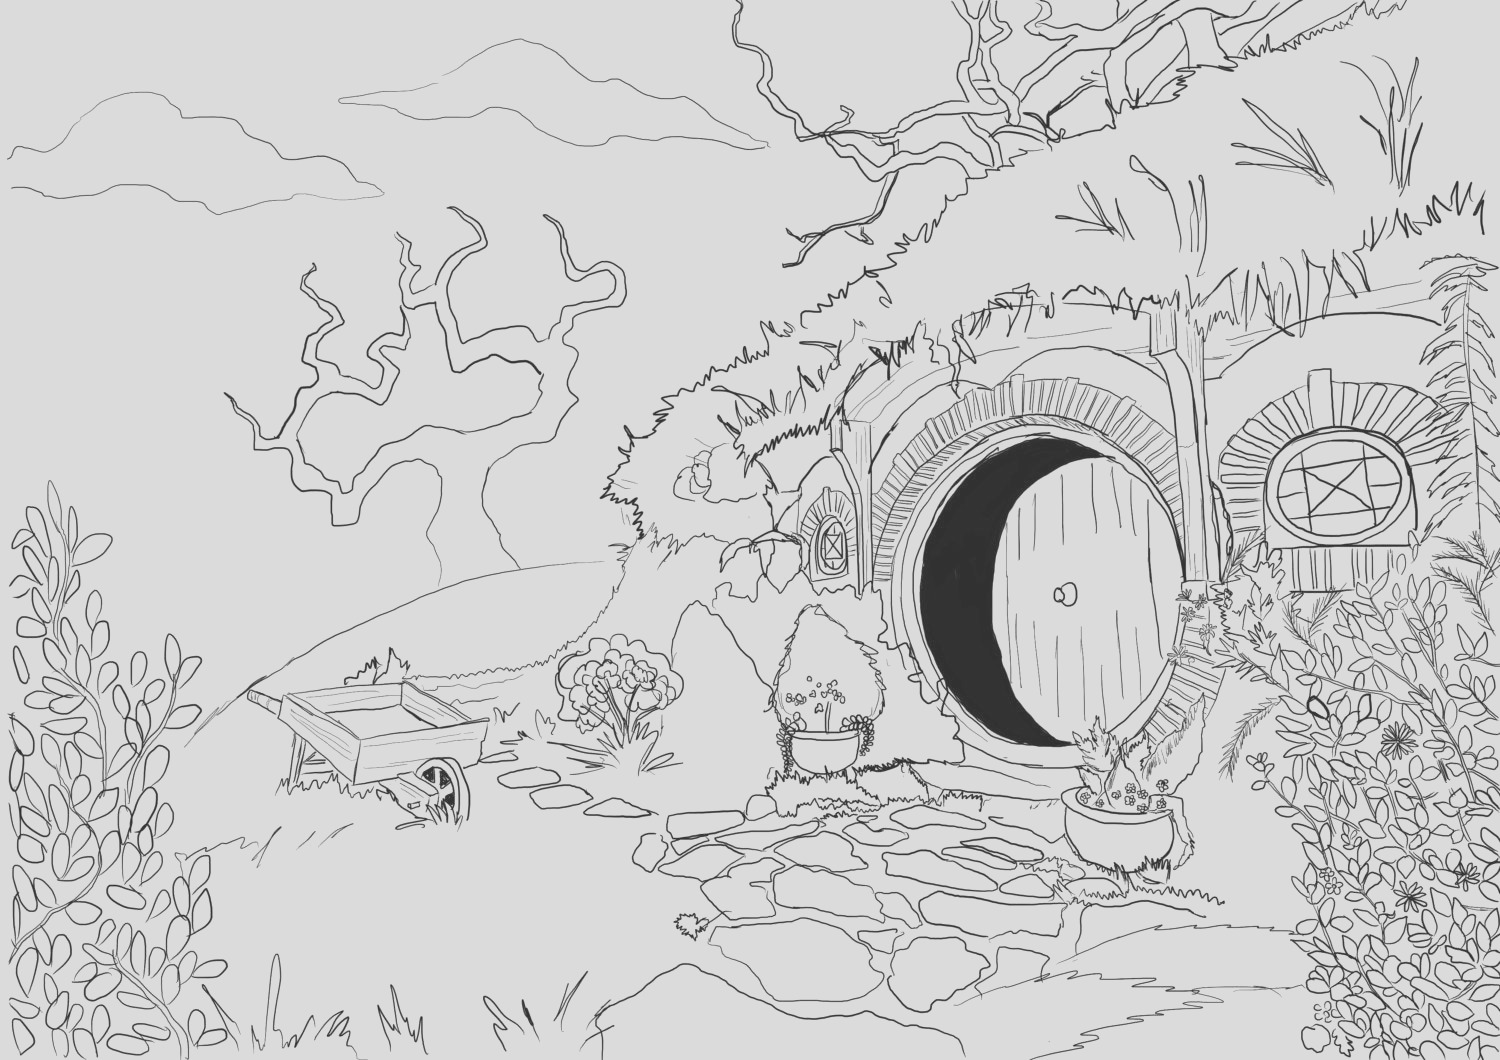 adult coloring page hobbit house from